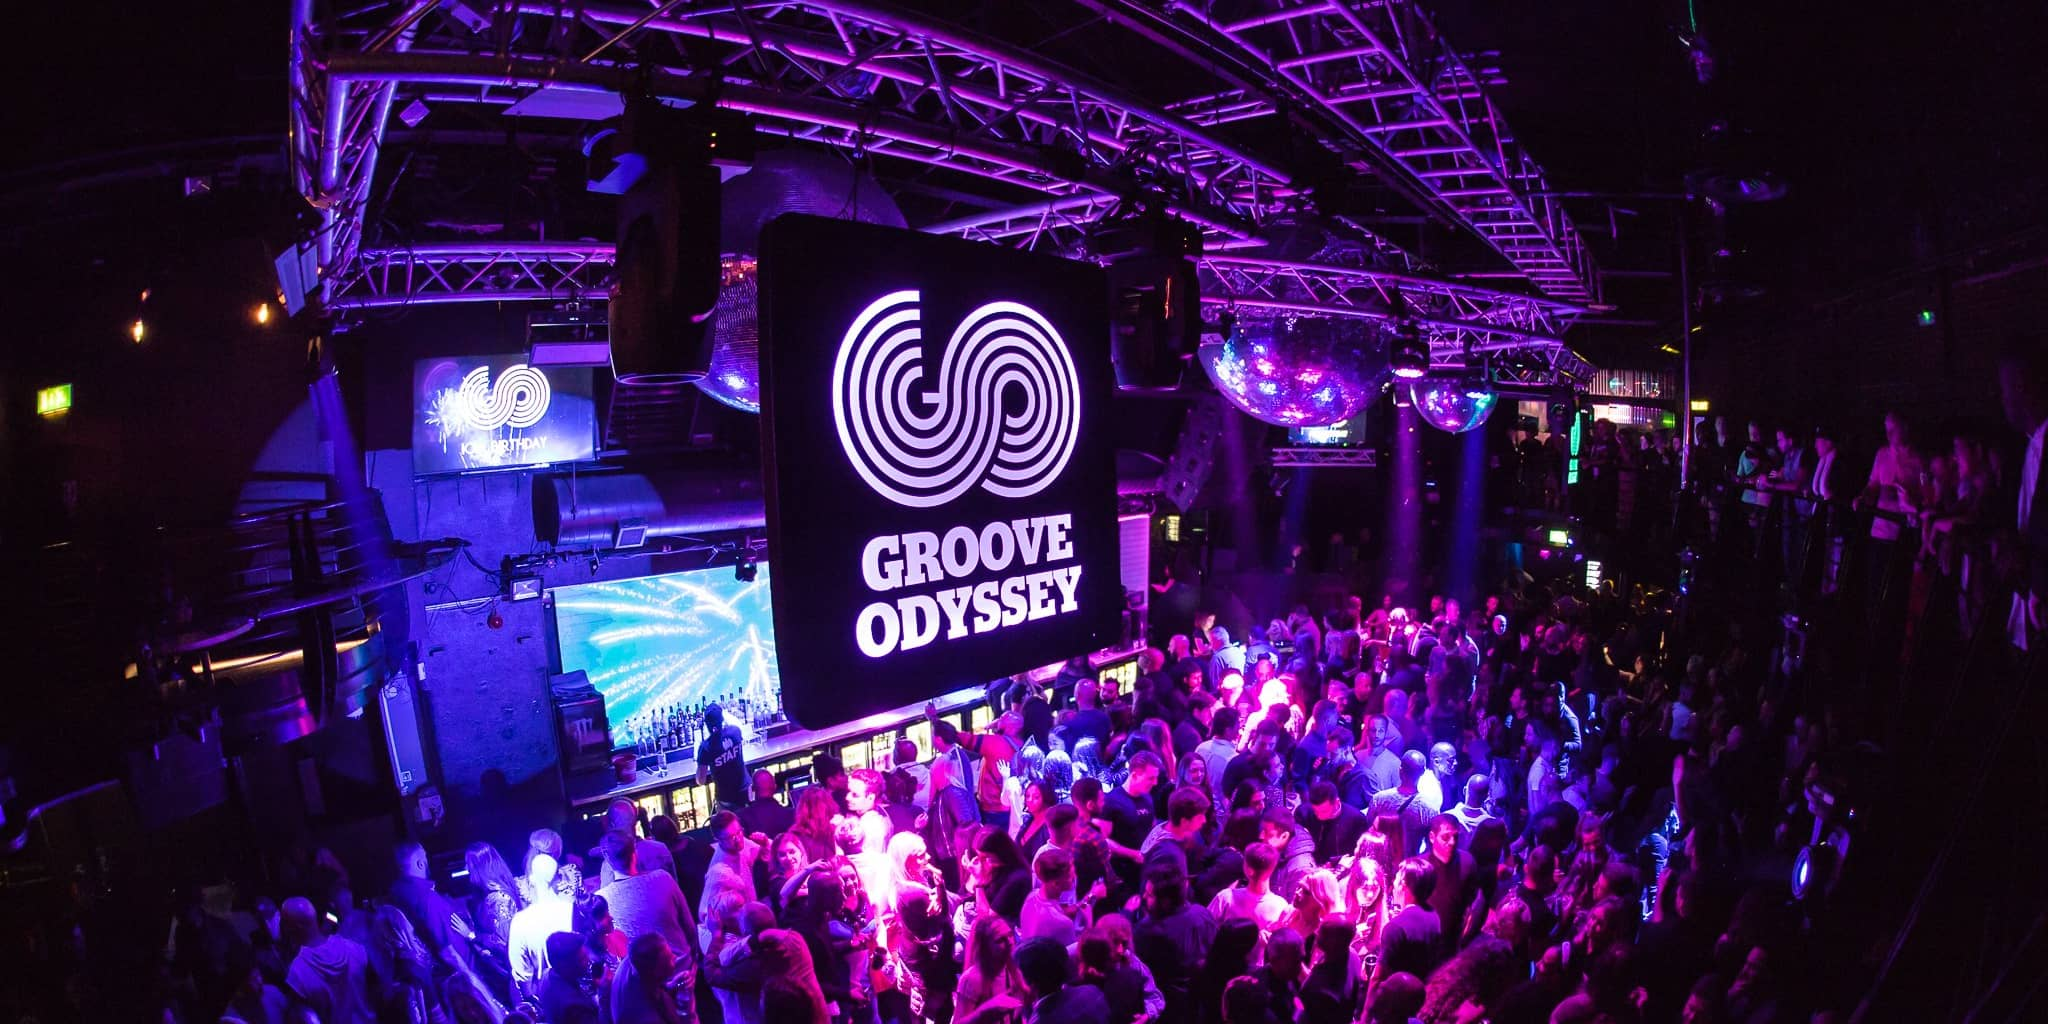 Groove Odyssey performing live at Ministry of Sound